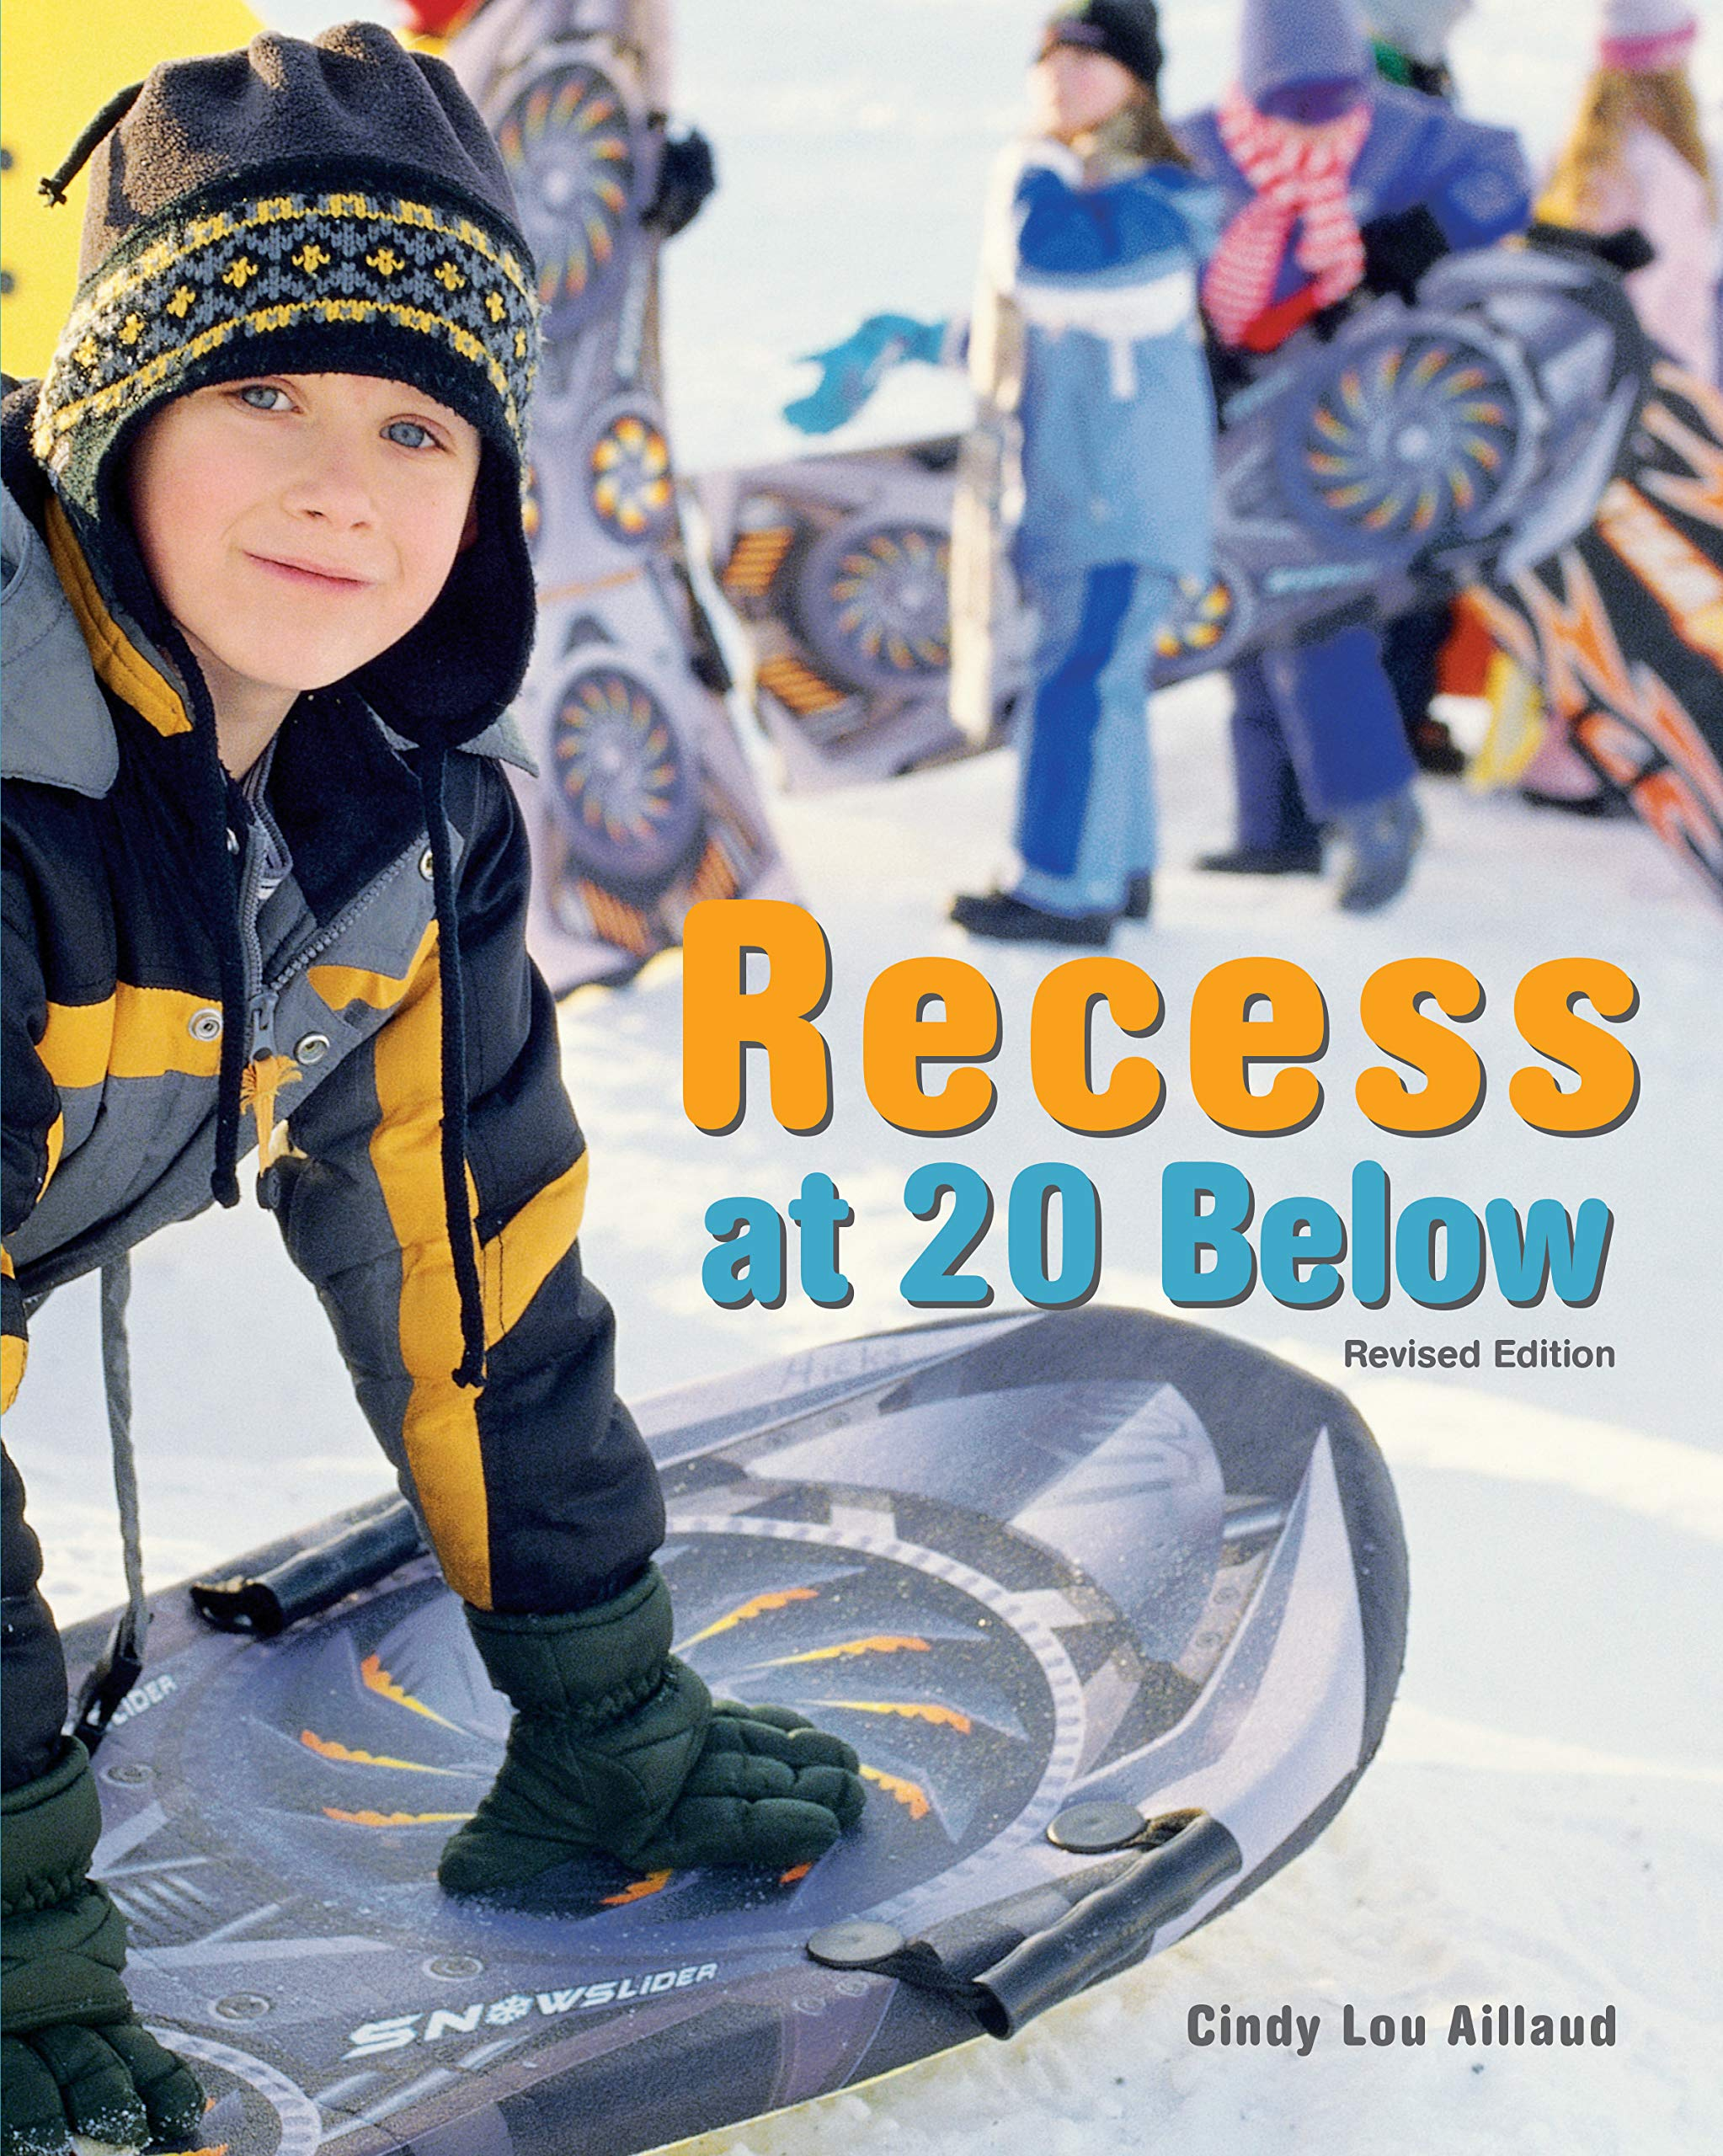 Recess at 20 Below, Revised Edition: Cindy Lou Aillaud: 9781513261911:  Amazon.com: Books